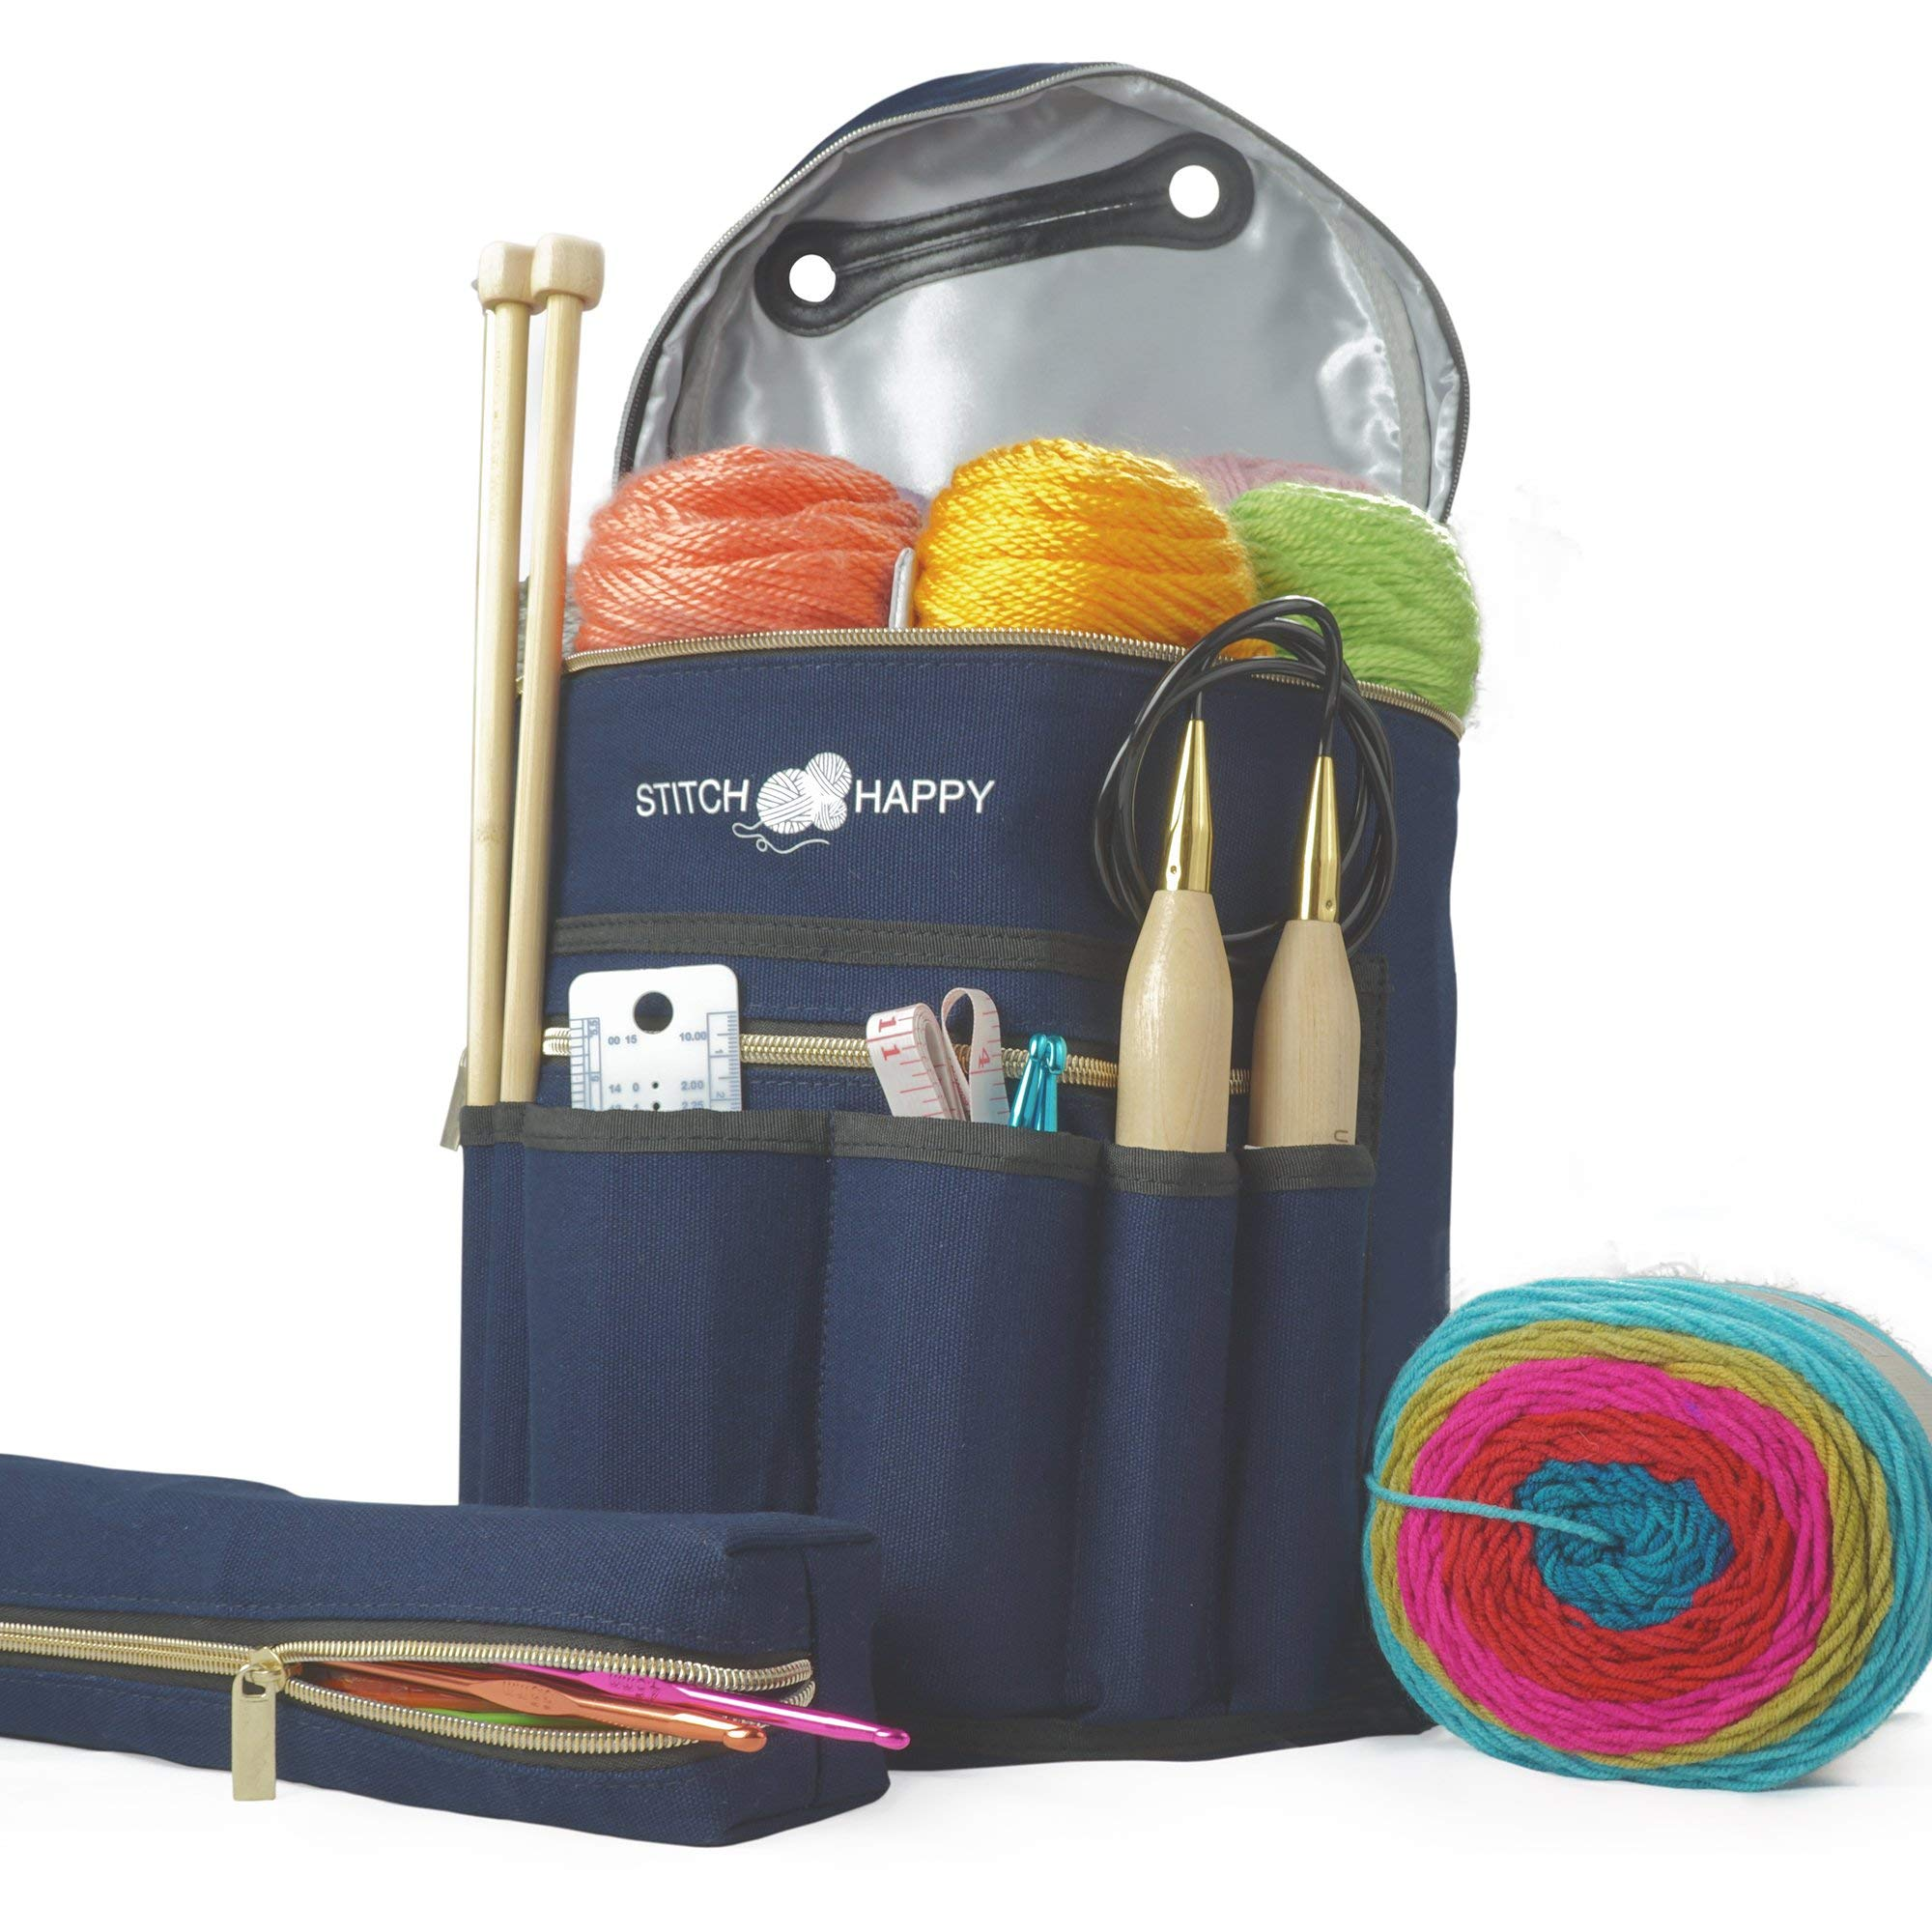 Knitting Bag - Yarn Tote Organizer w/Tool Case, 7 Pockets + Divider for Extra Storage of Projects, Supplies & Crochet (Navy) by Stitch Happy